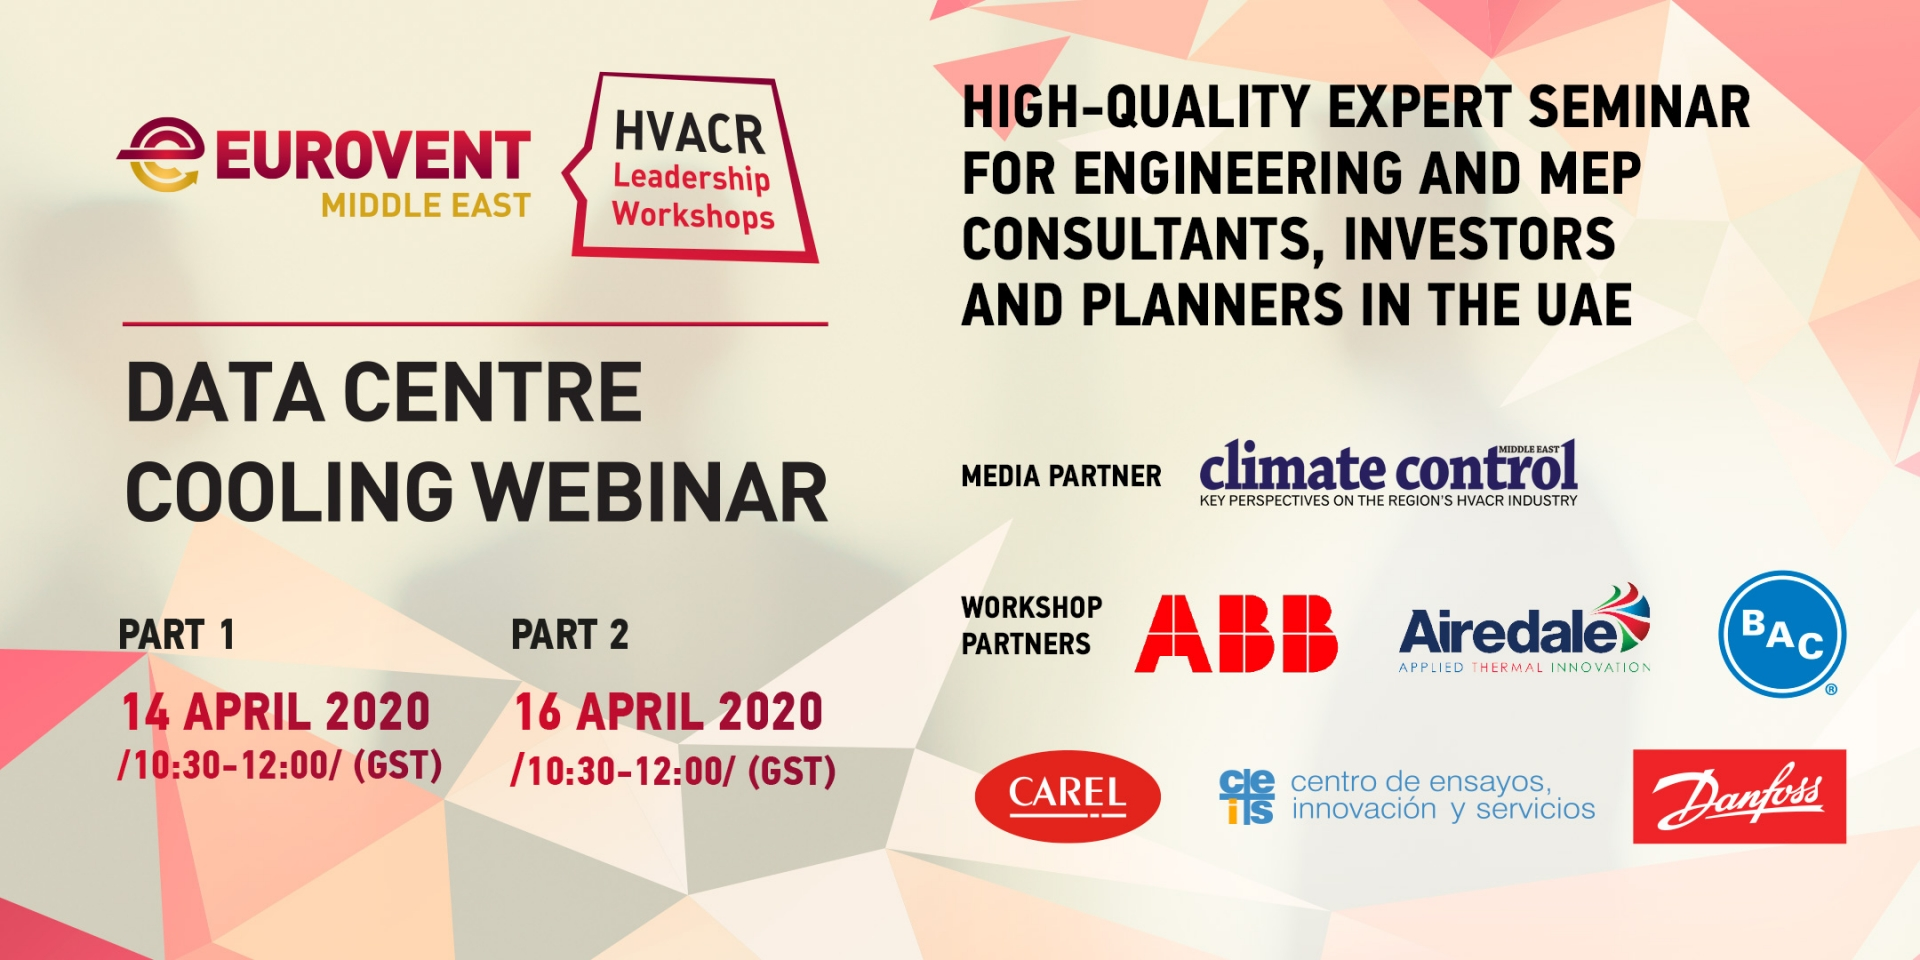 2020 - Eurovent Middle East to host Data Centre Cooling Workshop